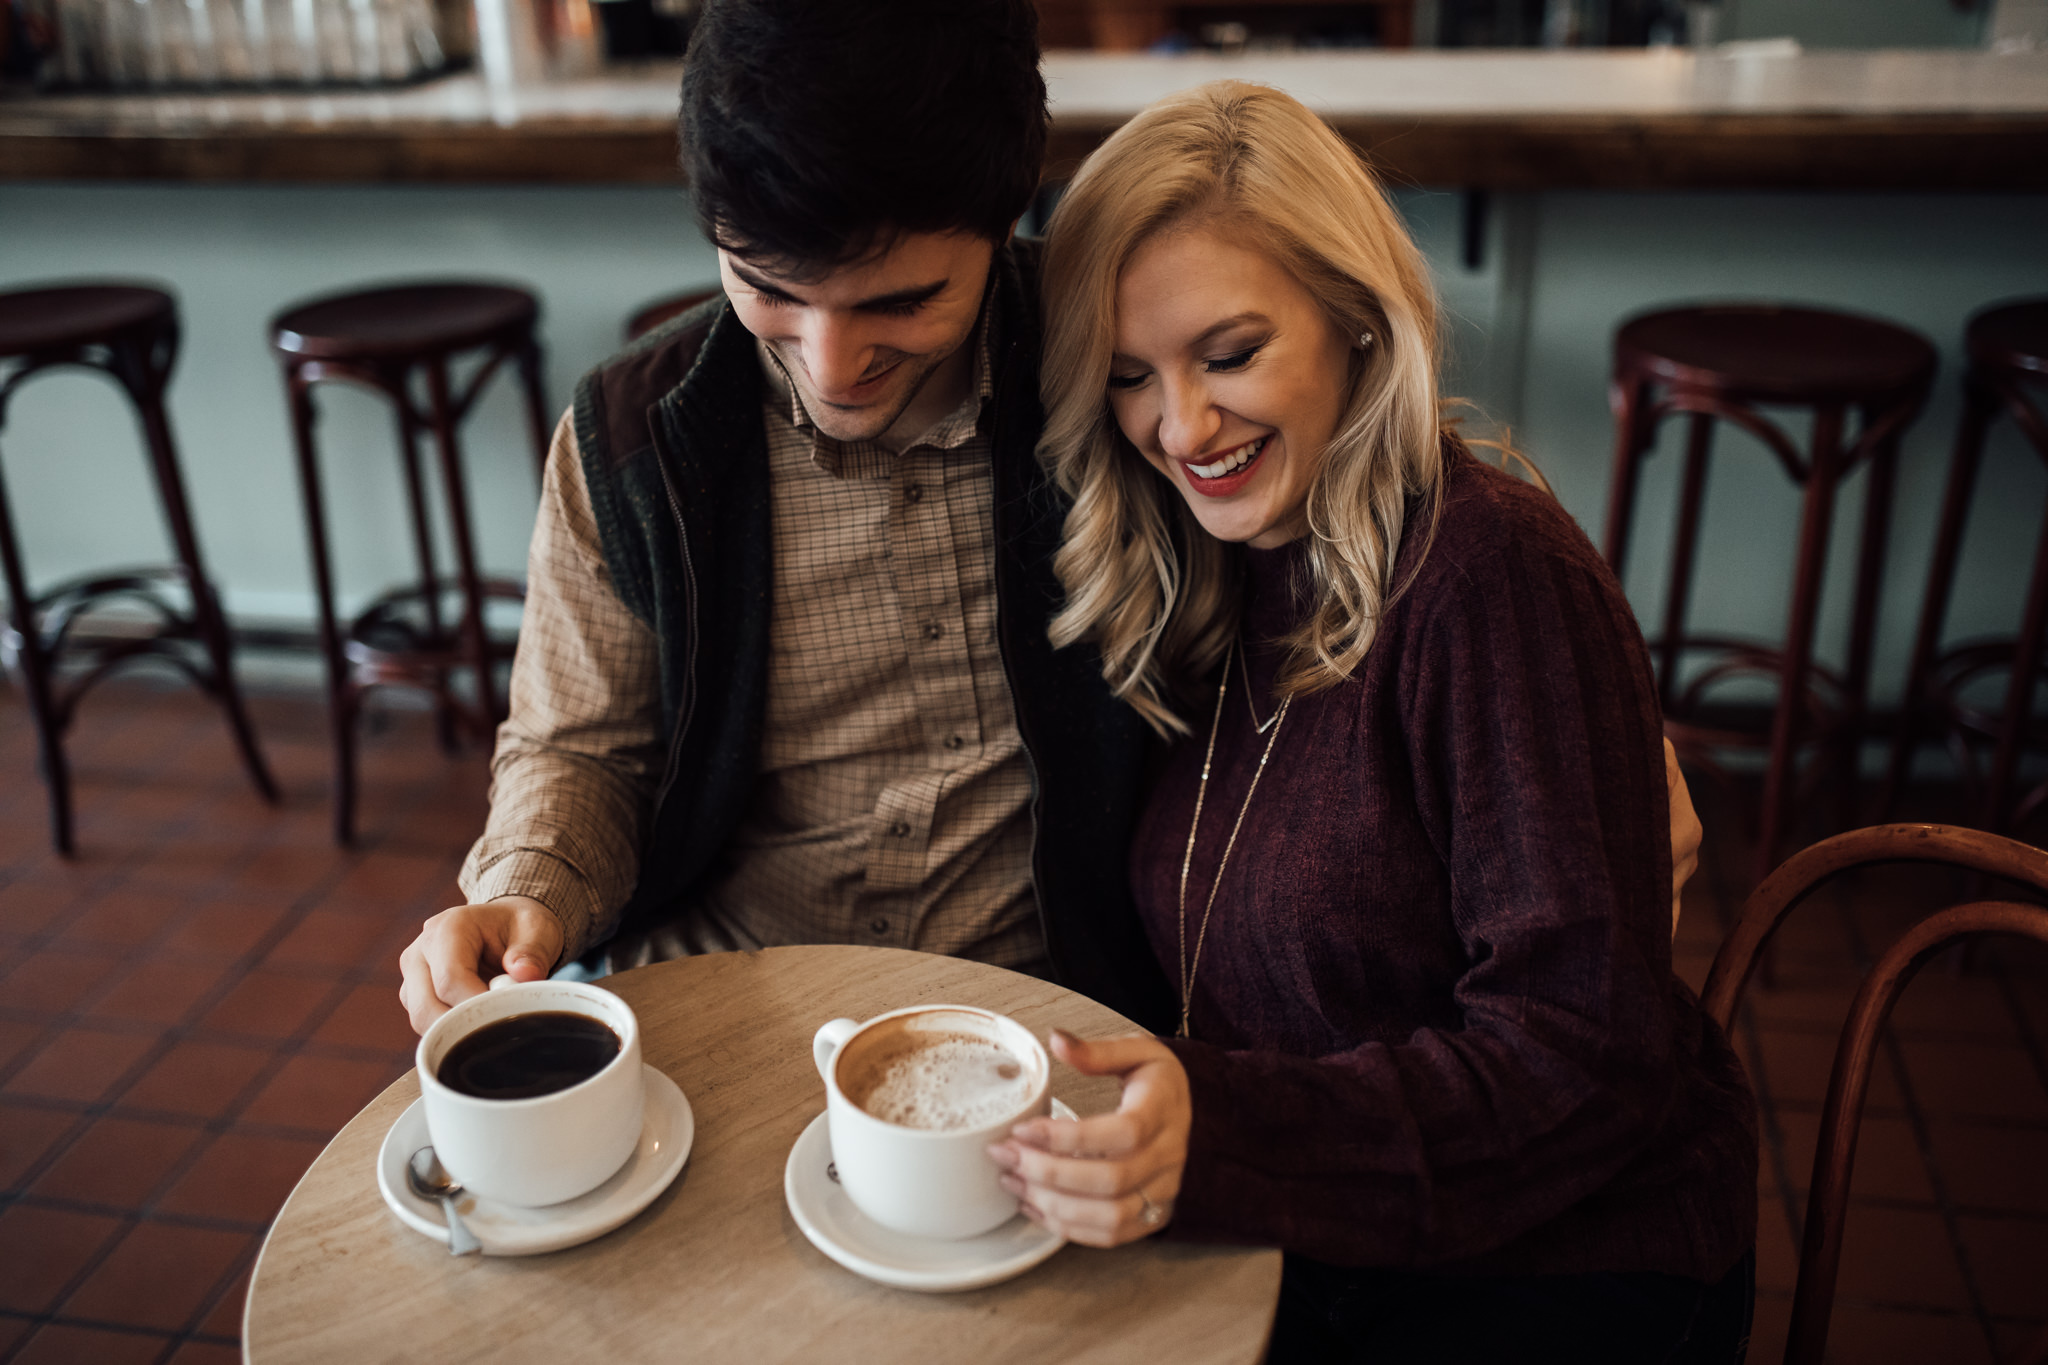 memphis-wedding-photographer-cassie-cook-photography-cafe-keough-engagement-photoshoot-coffee-engagement-14.jpg